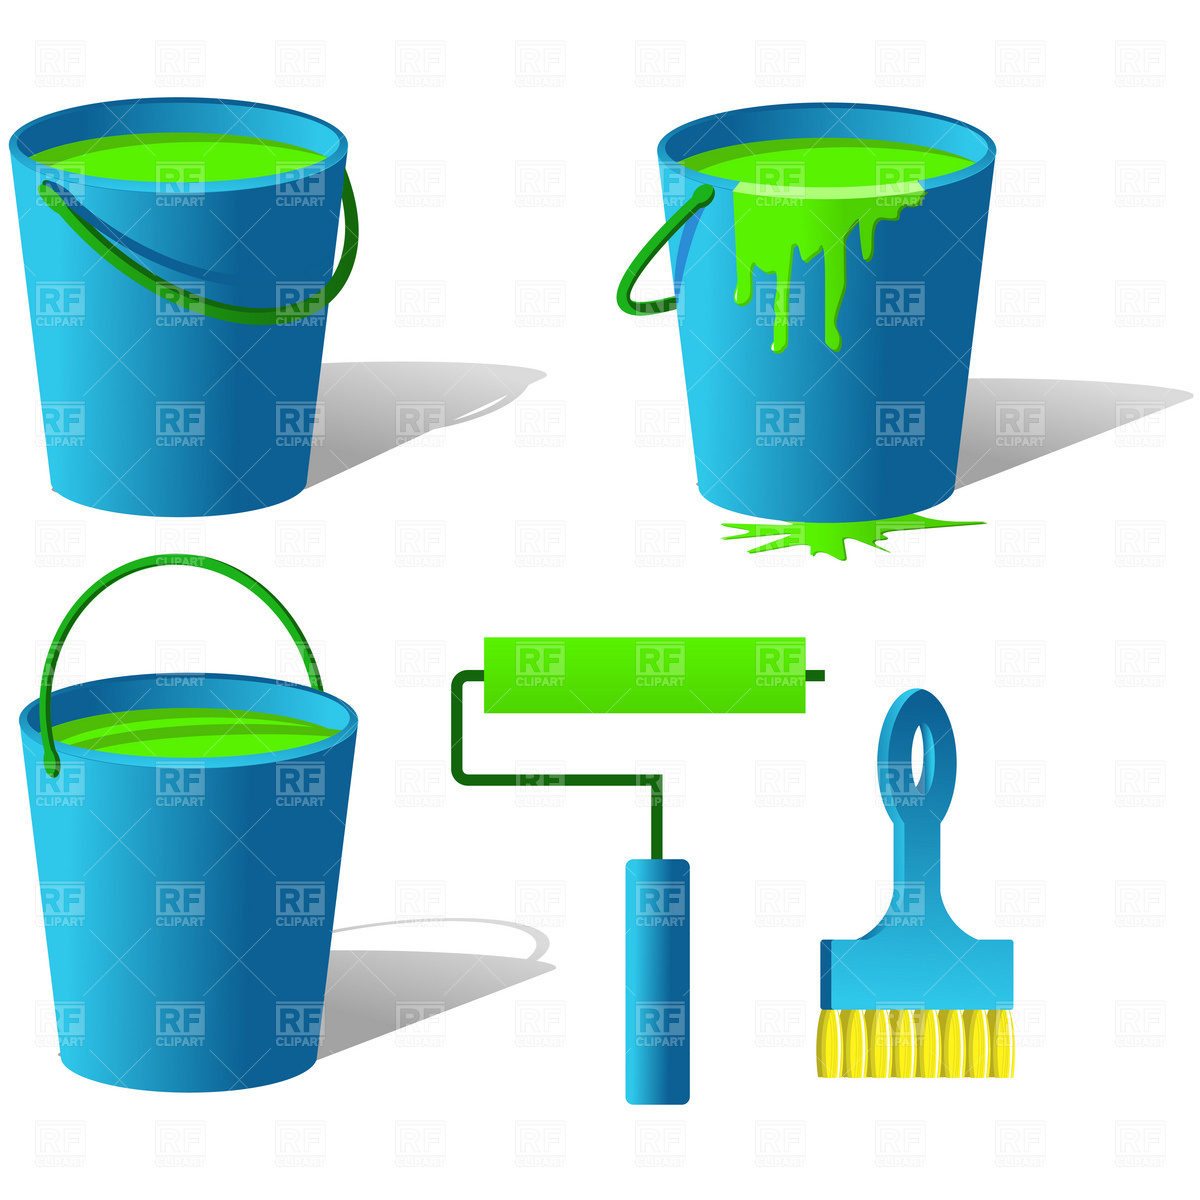 Paint Bucket Clip Art Spilled Paint Bucket Clip Art Bucket With Paint